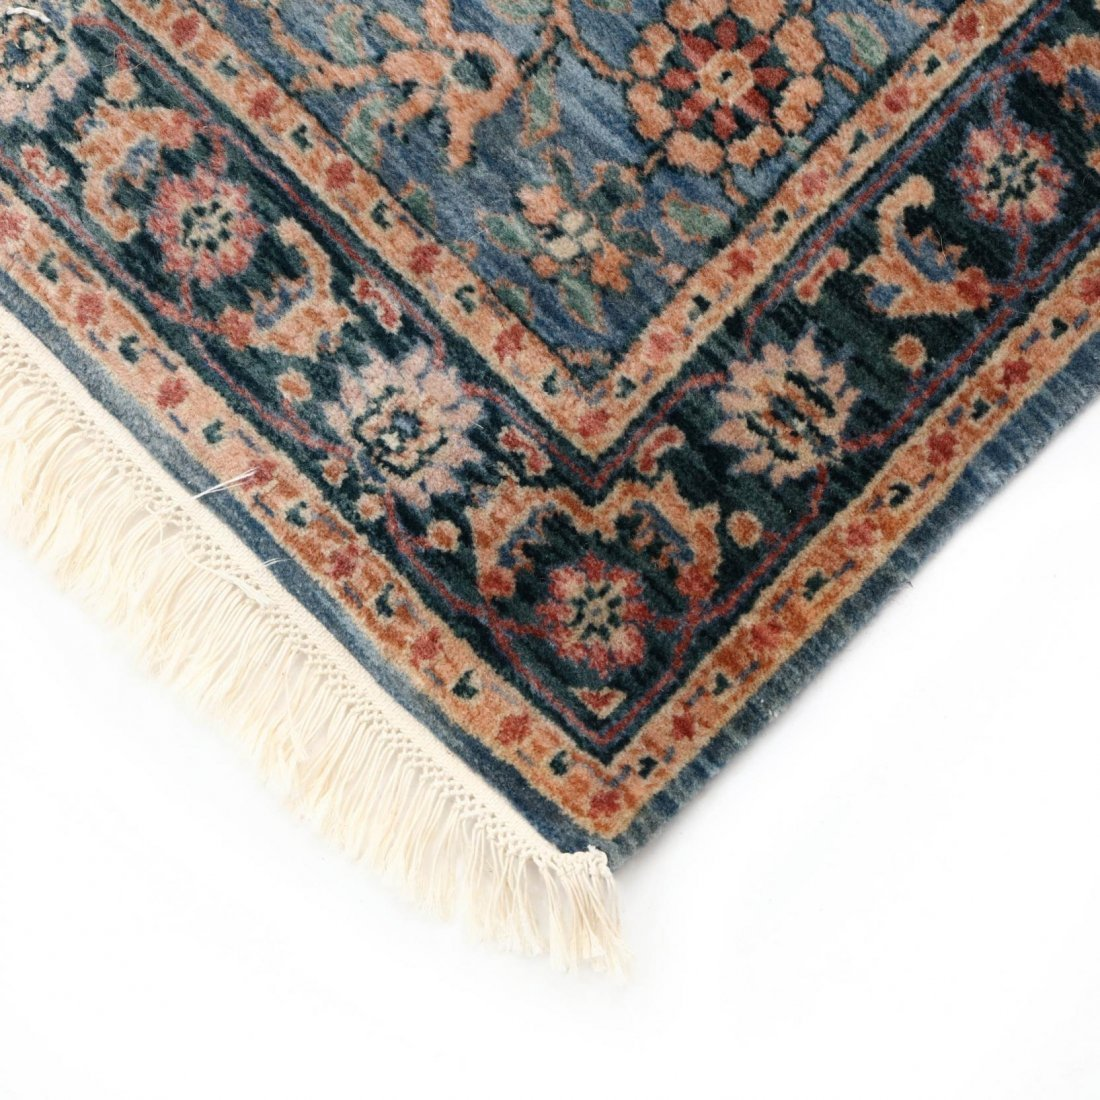 Two Indo Persian Area Rugs - 2